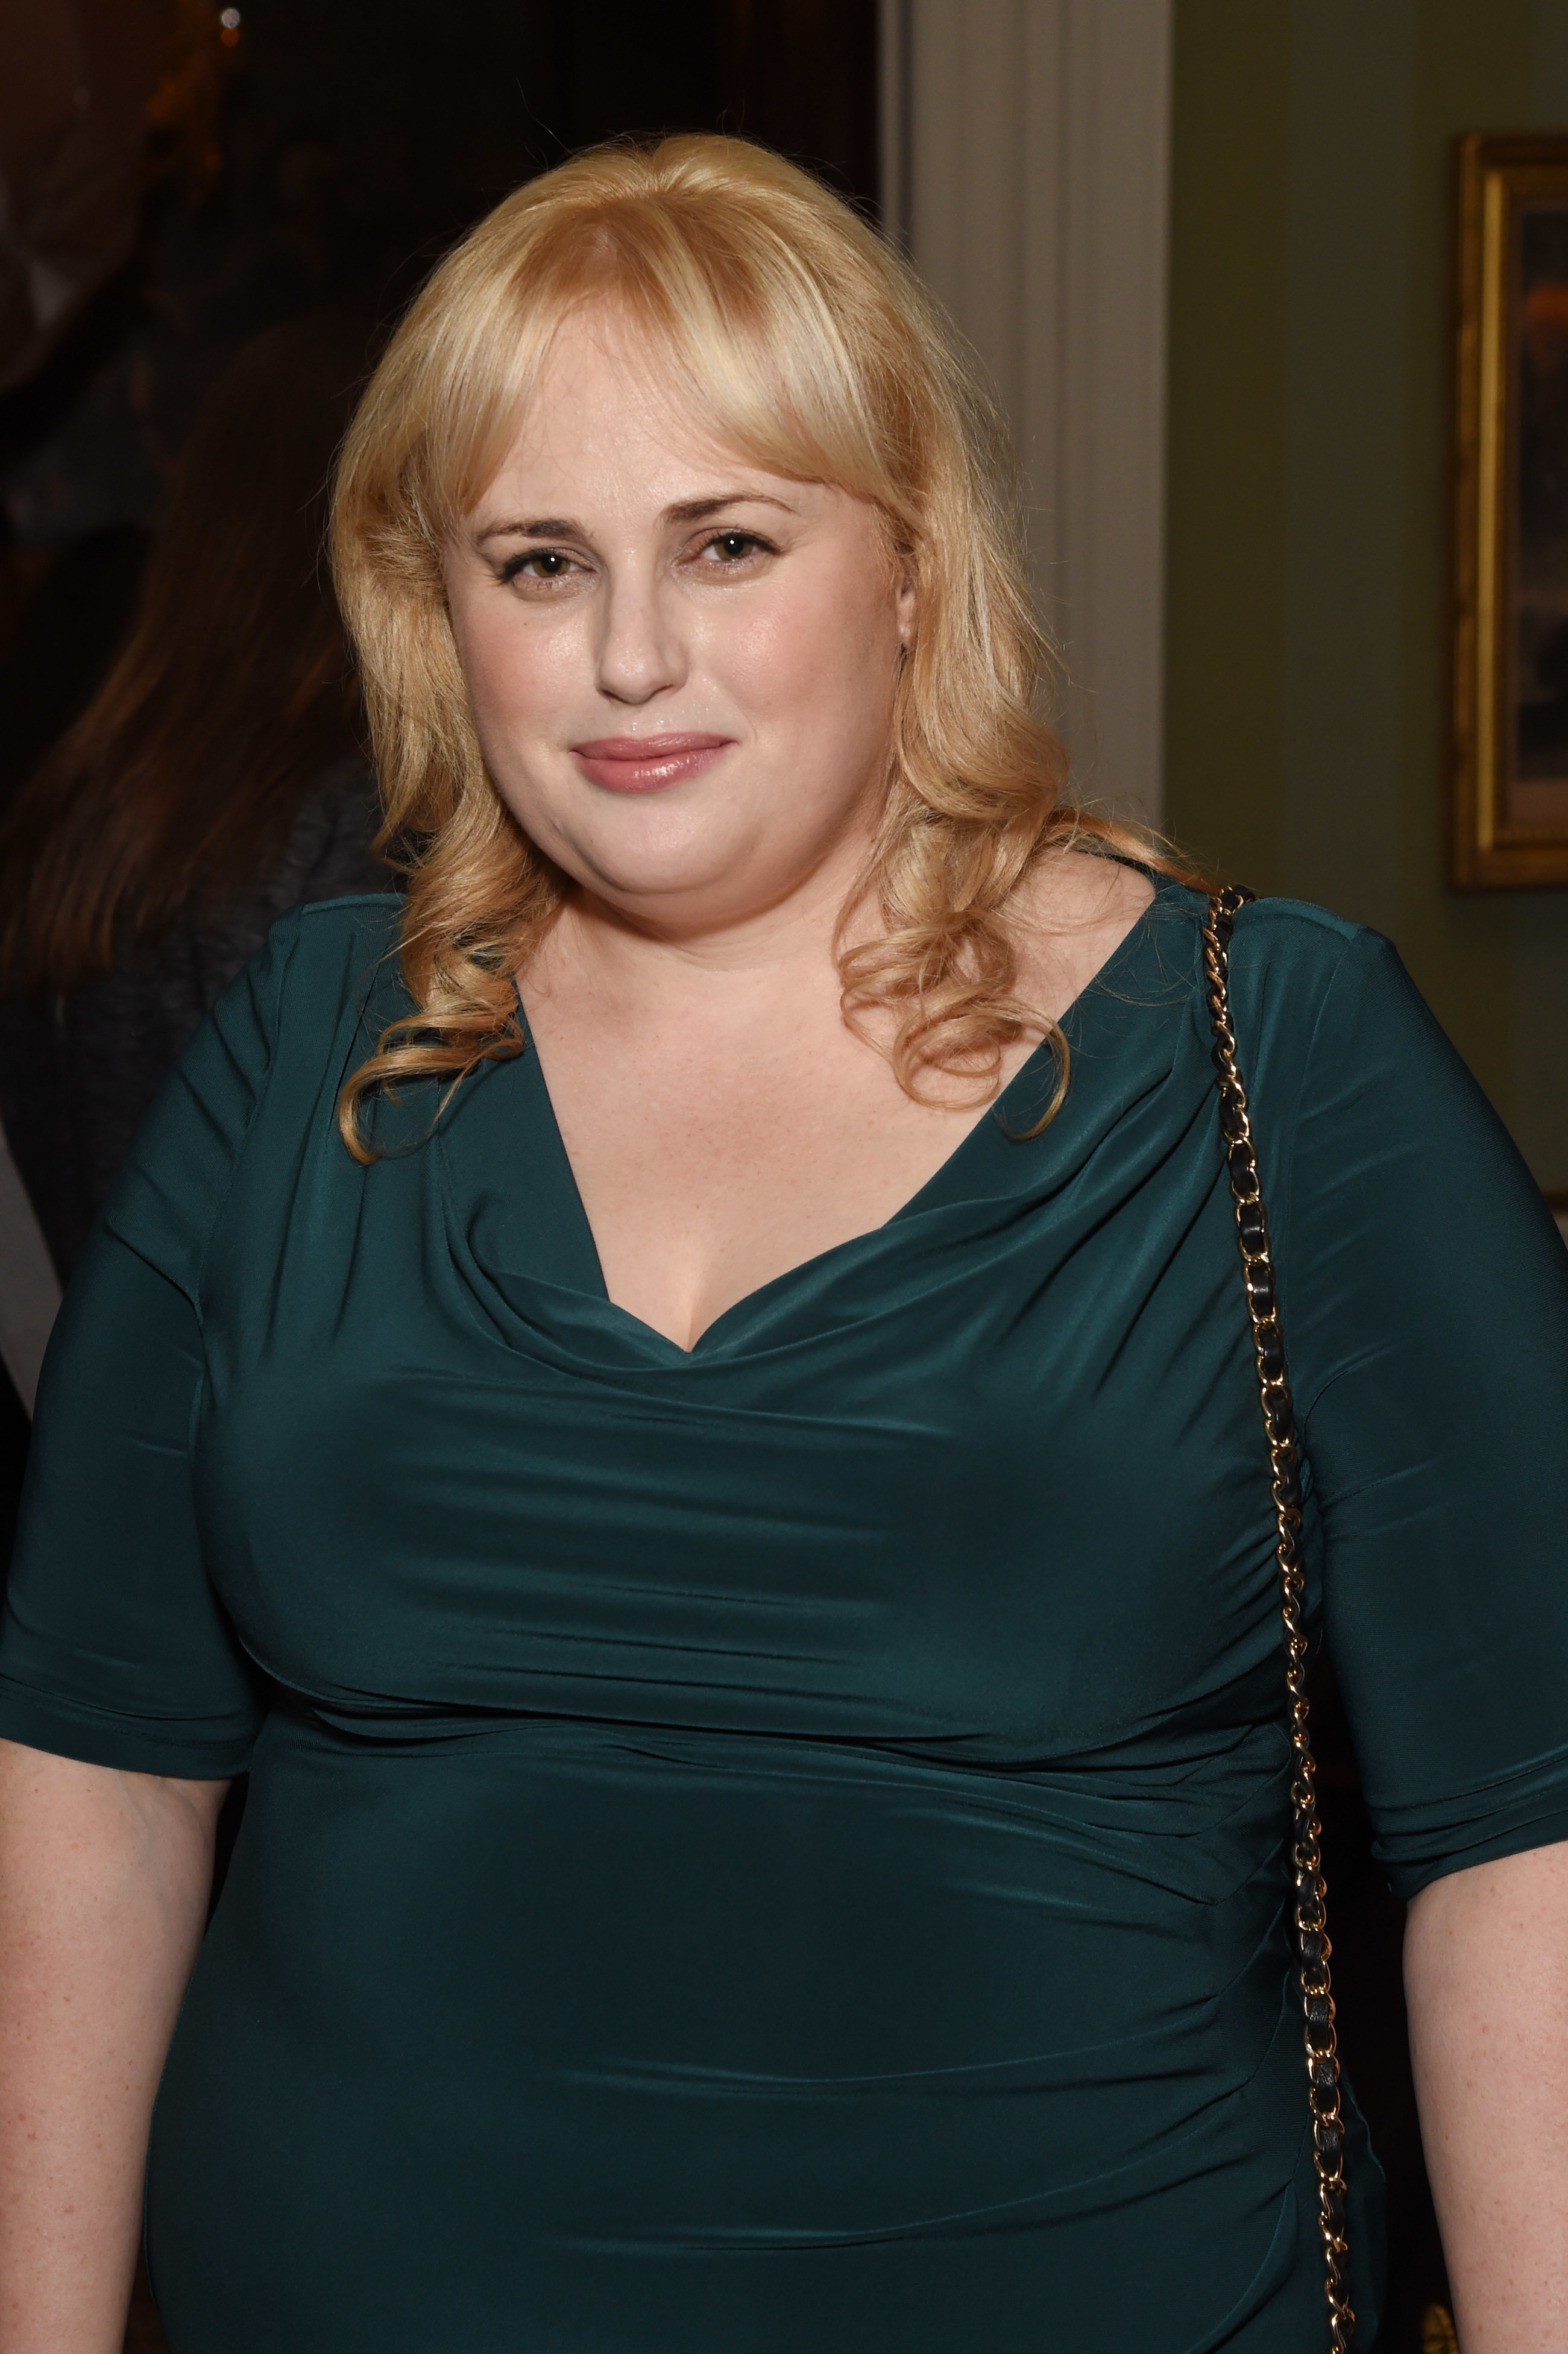 Rebel Wilson Accuses Unnamed Male Star Of 'Disgusting' Sexual Misconduct